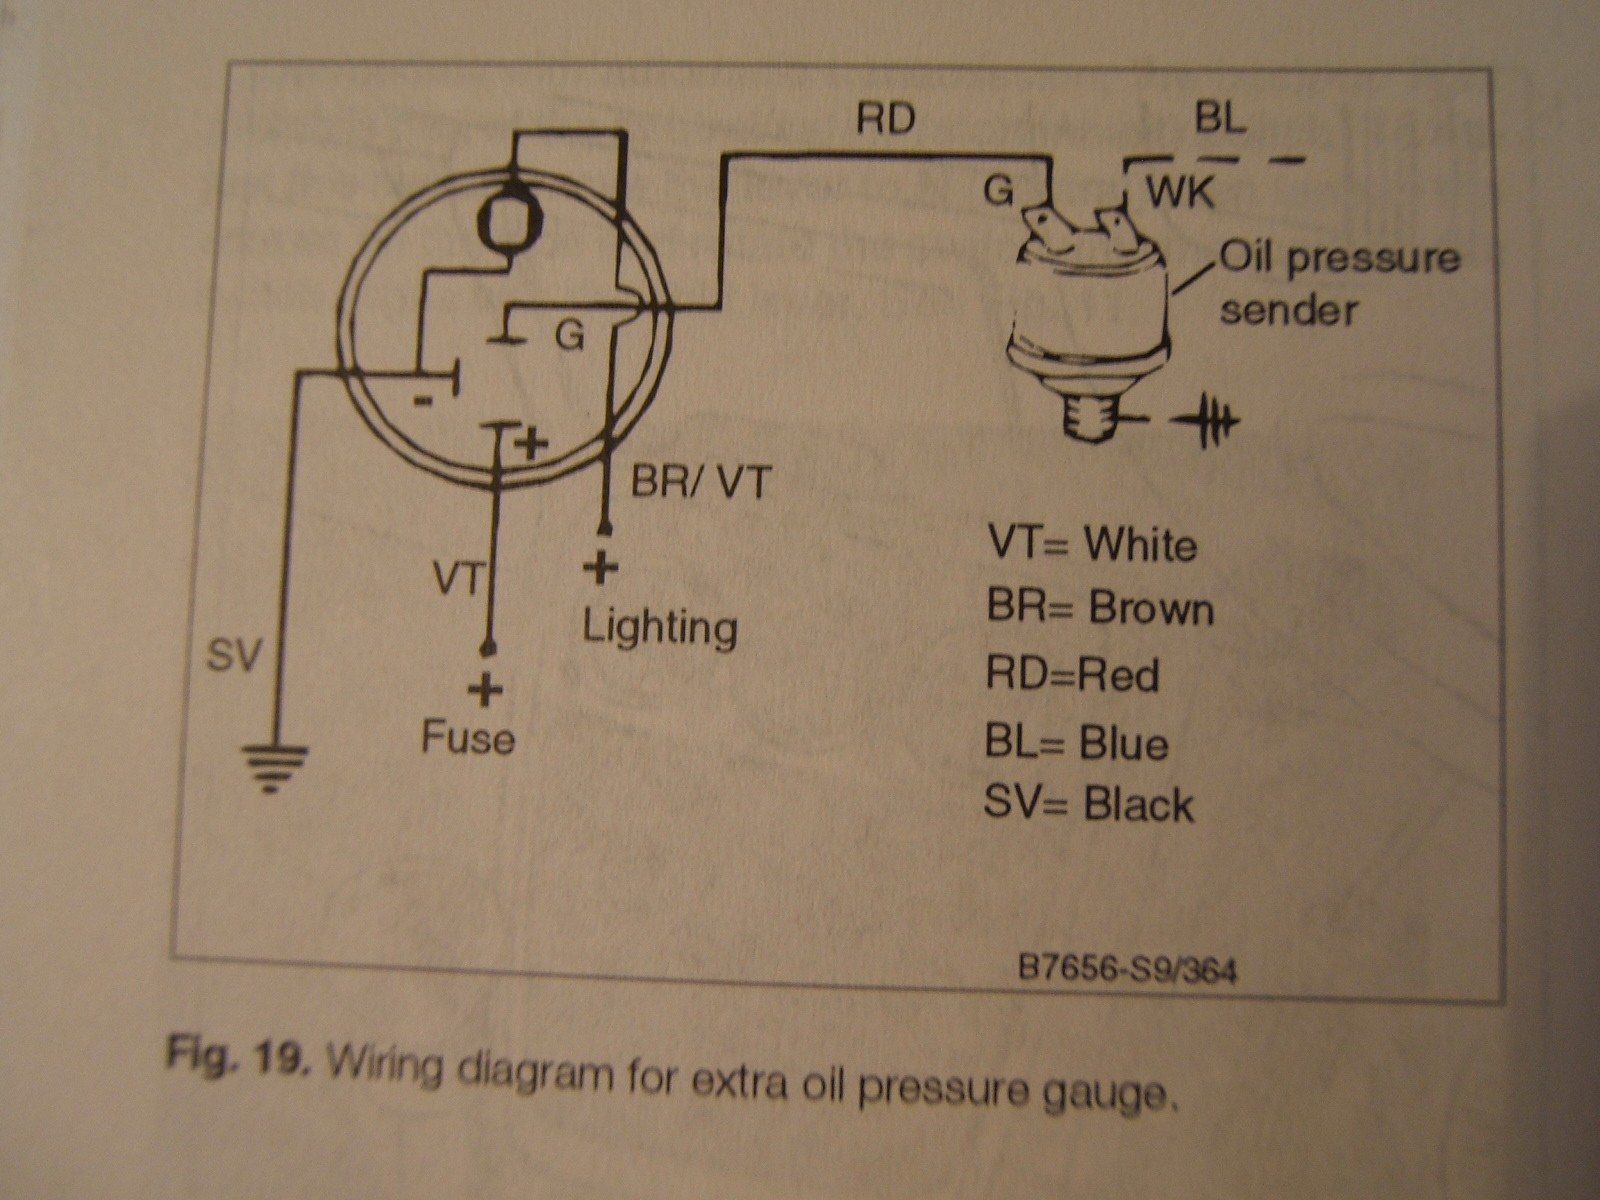 Vdo Oil Pressure Gauge Wiring Instructions Fe 4727] Prosport Oil Pressure Gauge Wiring Diagram Prosport Of Vdo Oil Pressure Gauge Wiring Instructions 3a8d Wiring Diagram for Glowshift Boost Gauge